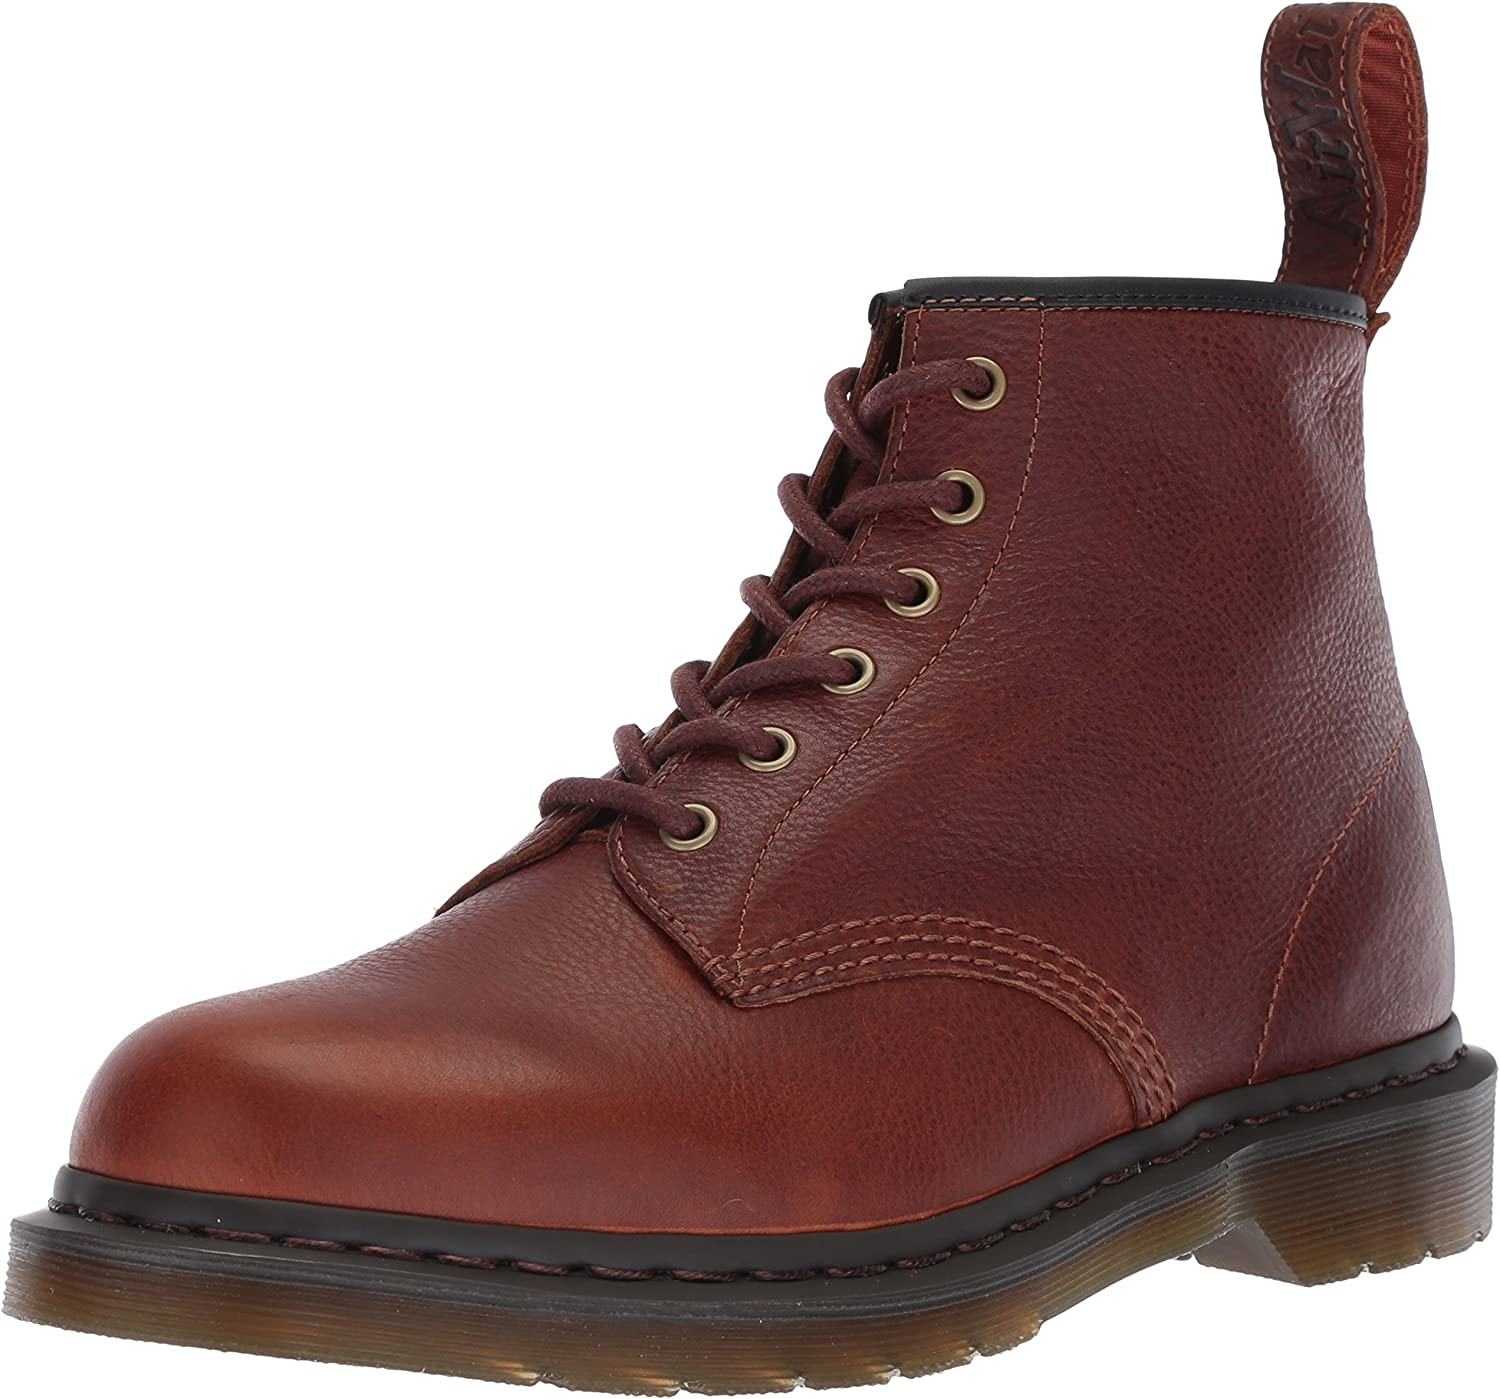 Dr. Martens Unisex-Adult 101 Tan Harvest Leather Fashion Boot